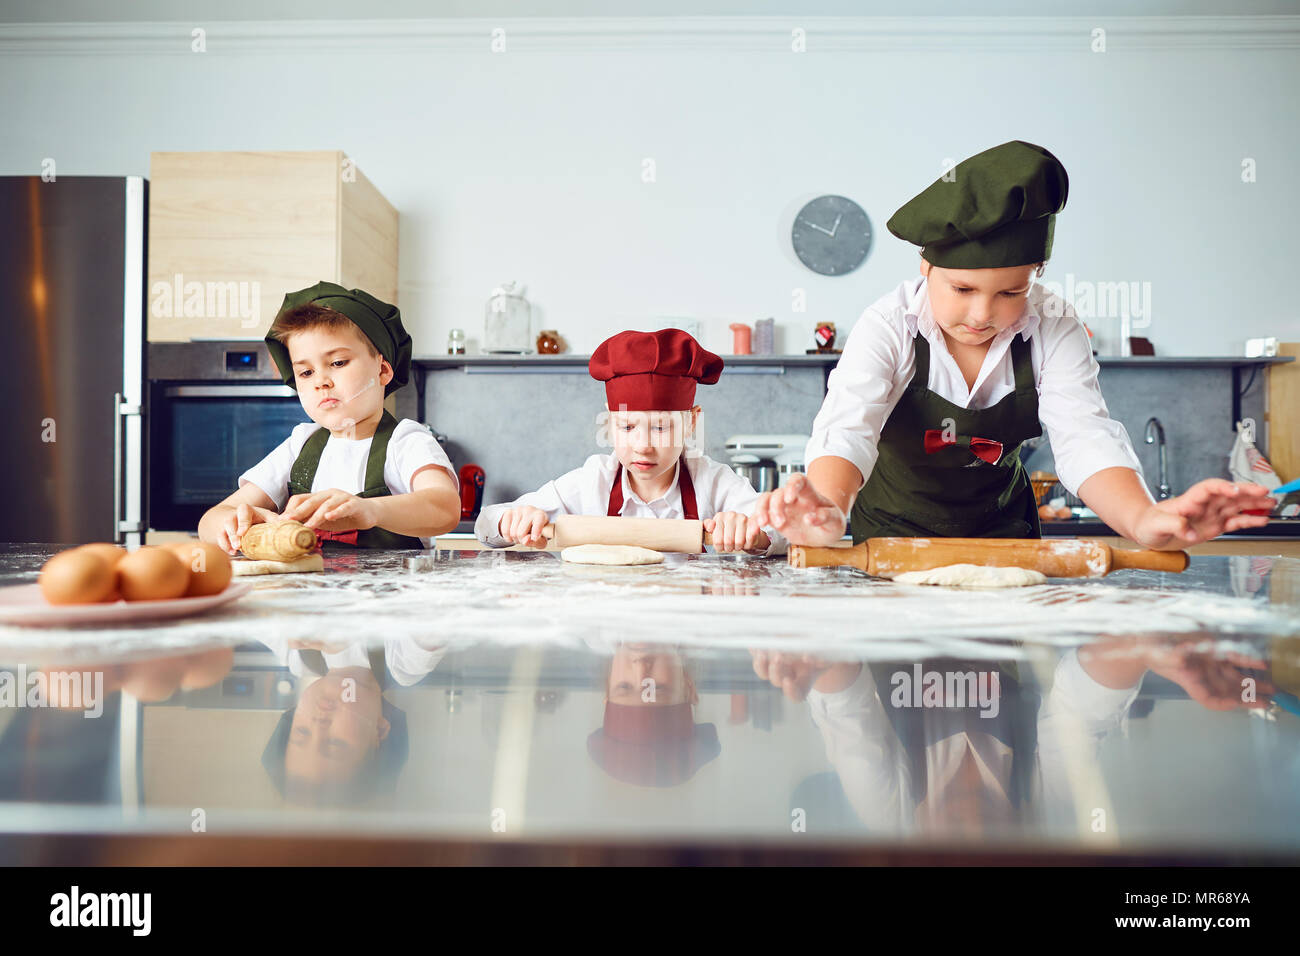 A group of children are cooking  in the kitchen. - Stock Image